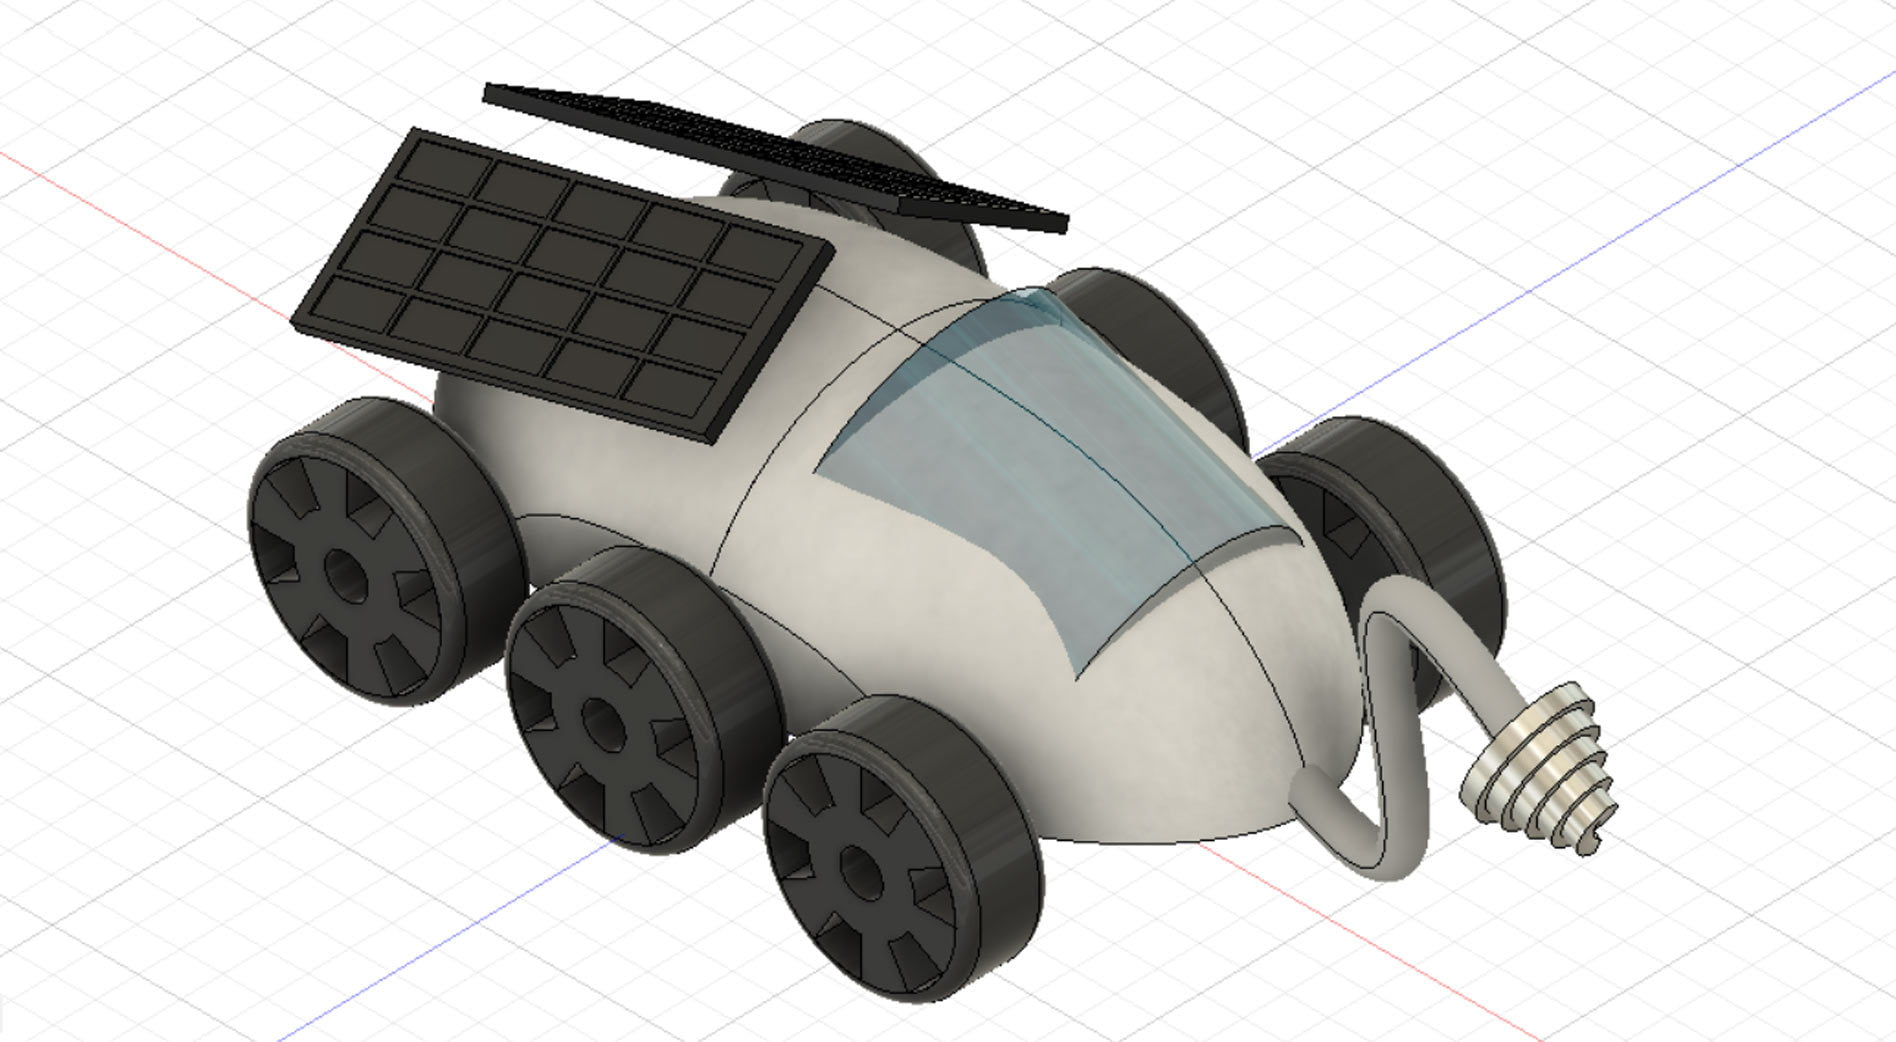 Design A Lunar Rover in Fusion 360